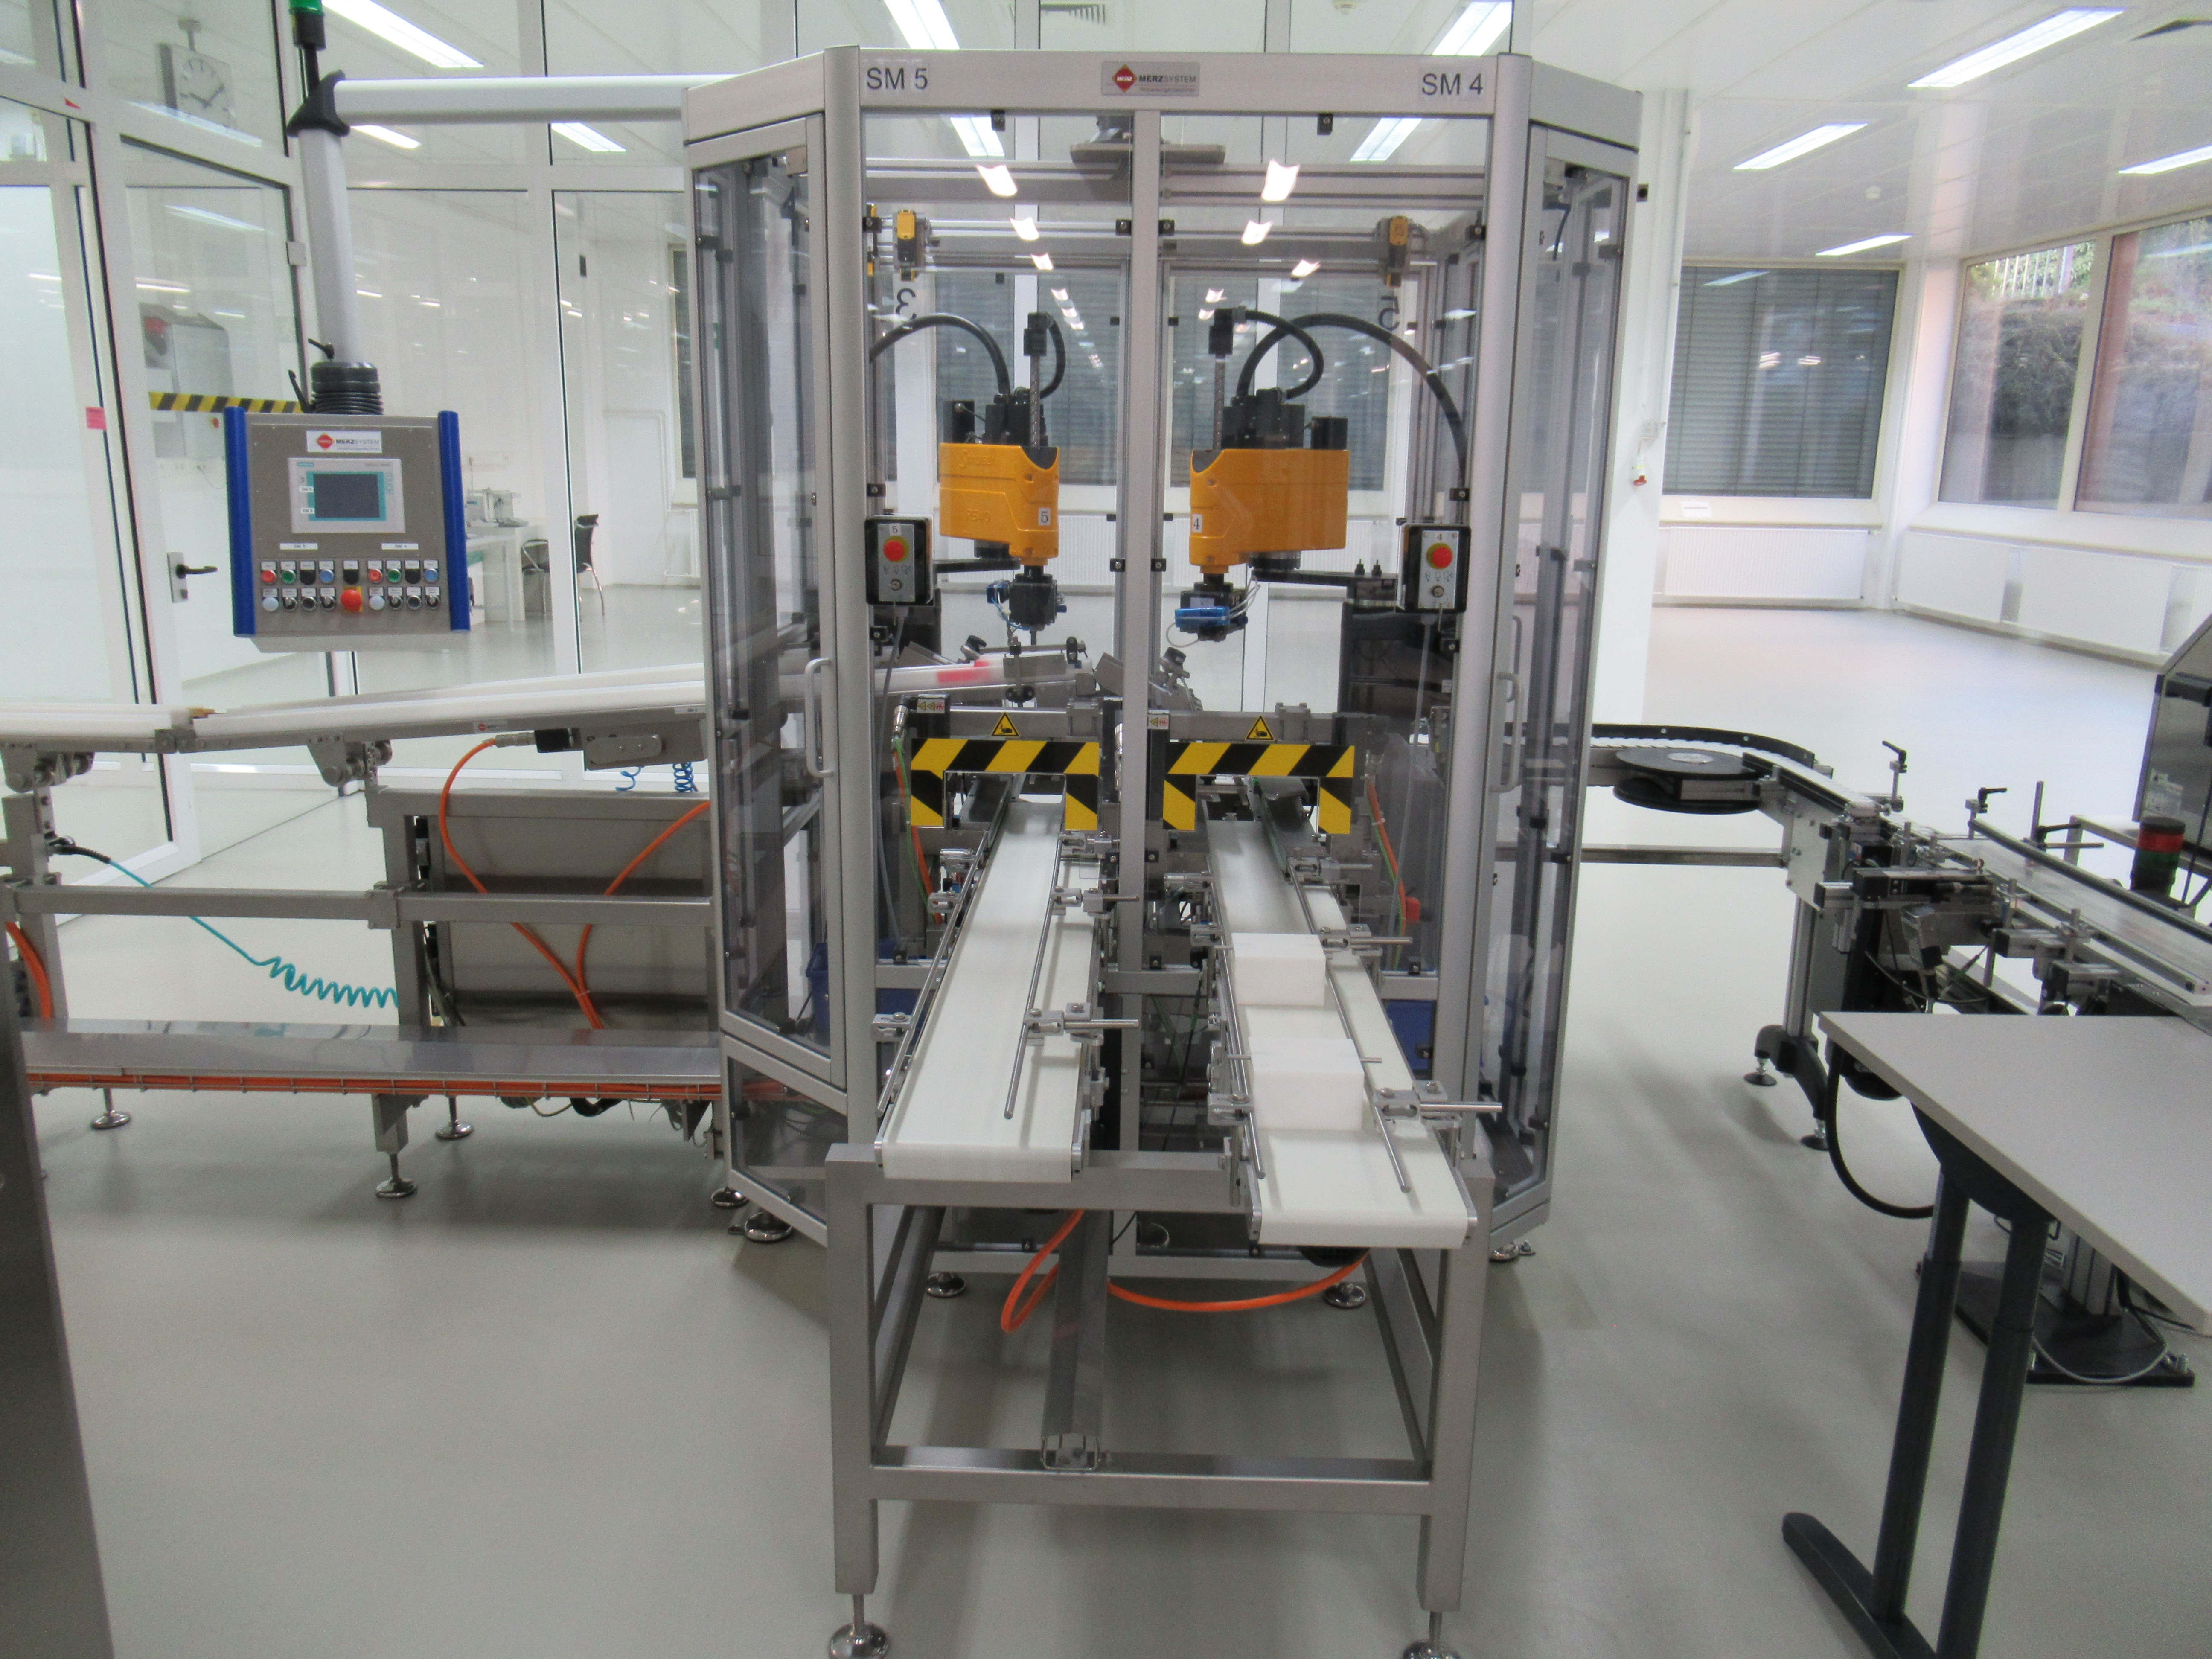 Merz KT160 semi-automatic packing line for packing sticks into pre-folded cartons